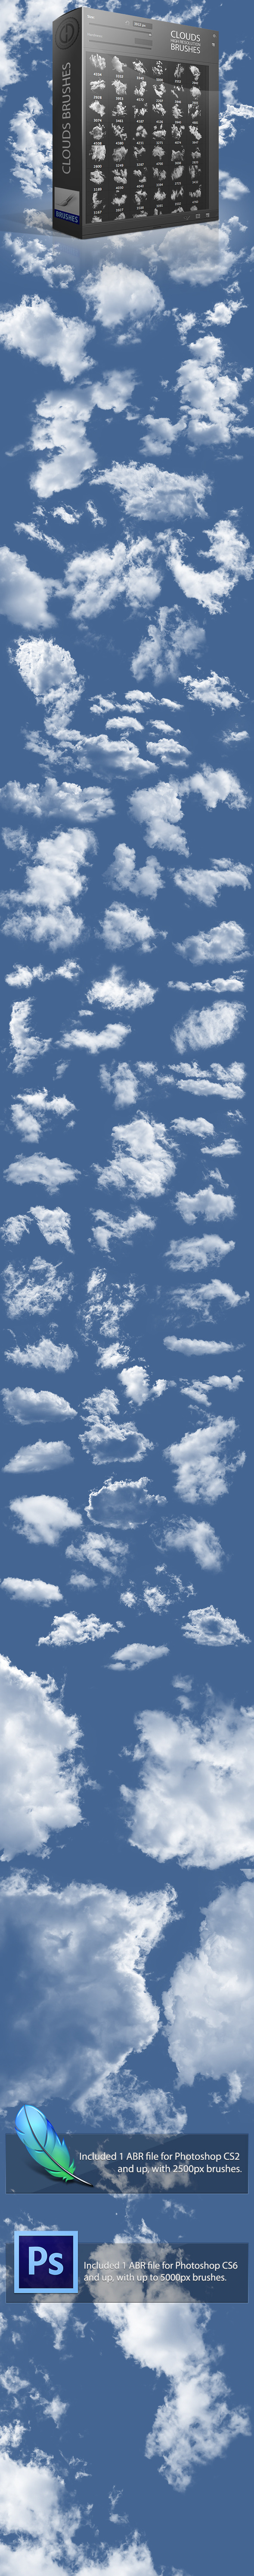 Clouds Brushes 2,0 - Brushes Photoshop